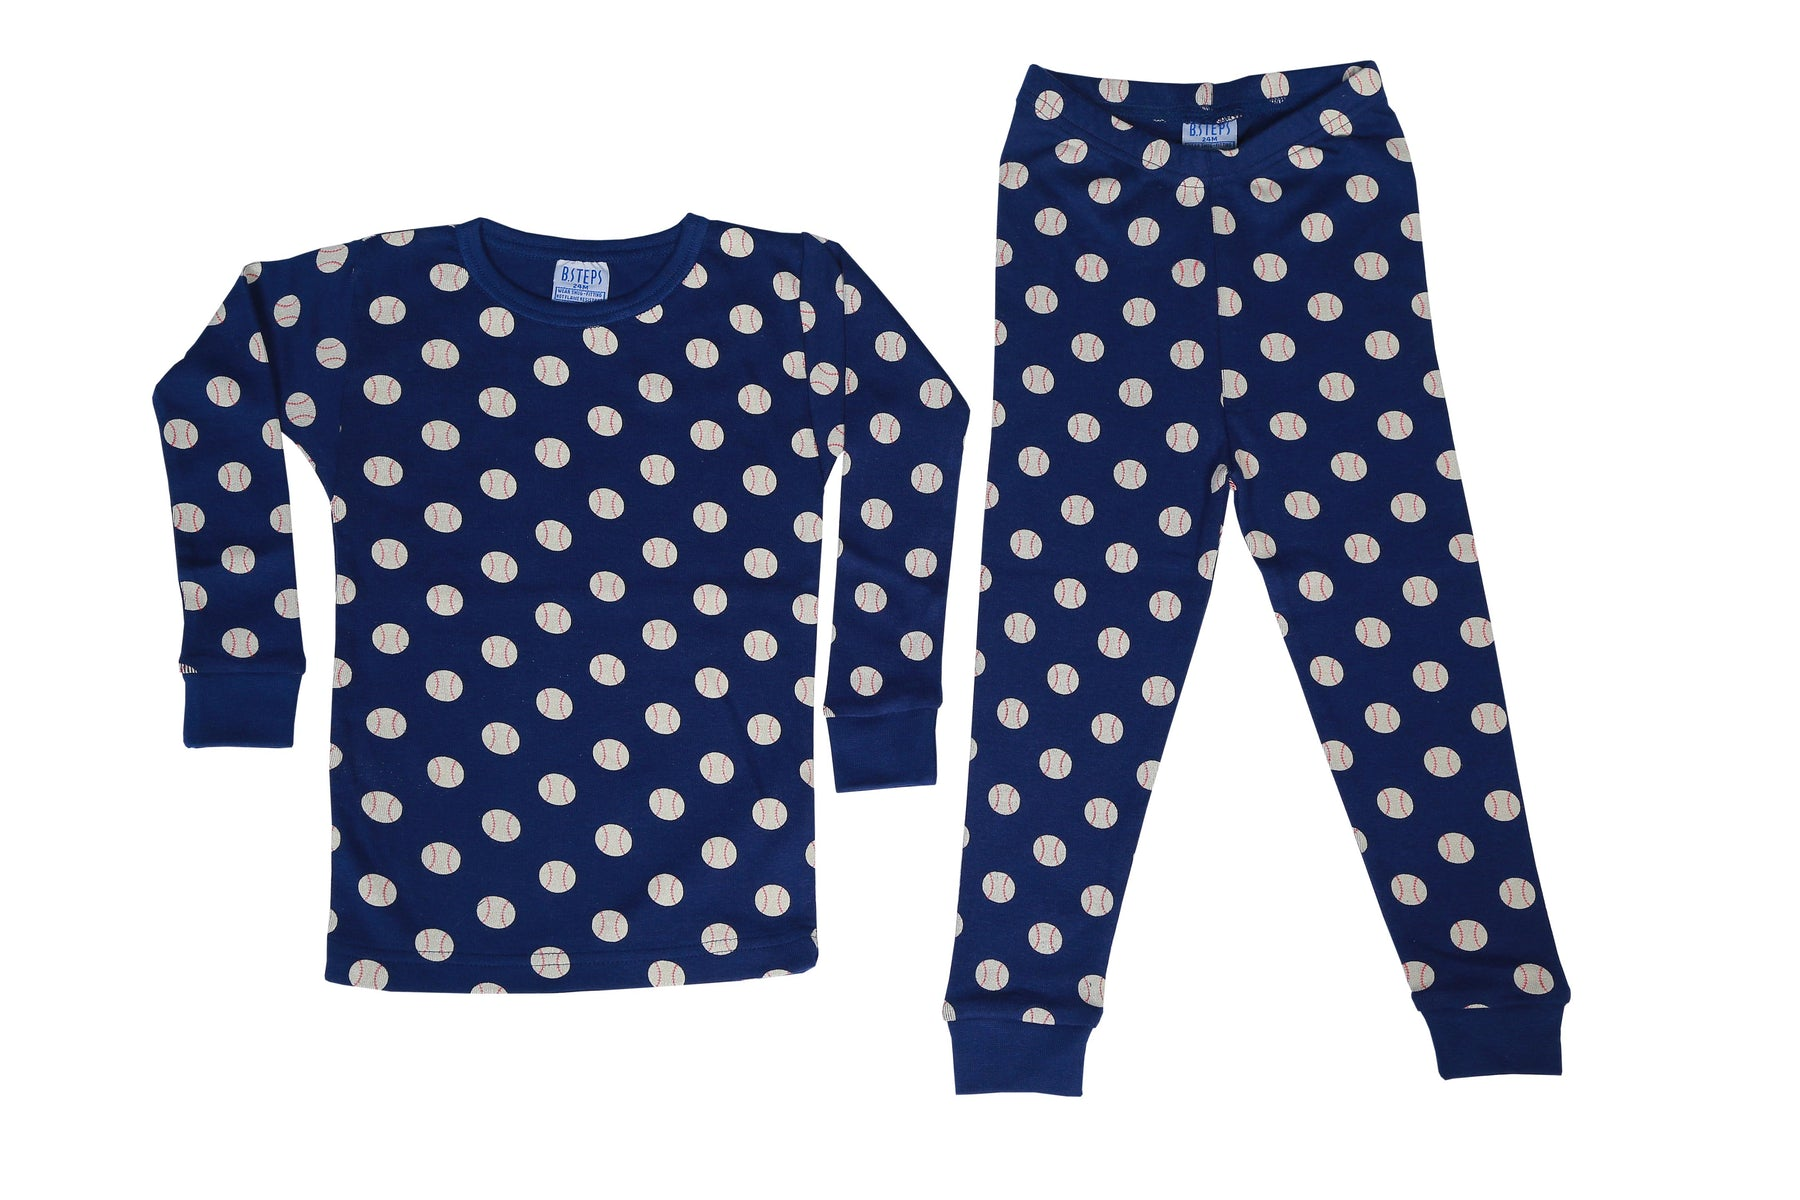 Pajamas - Baseballs on Navy